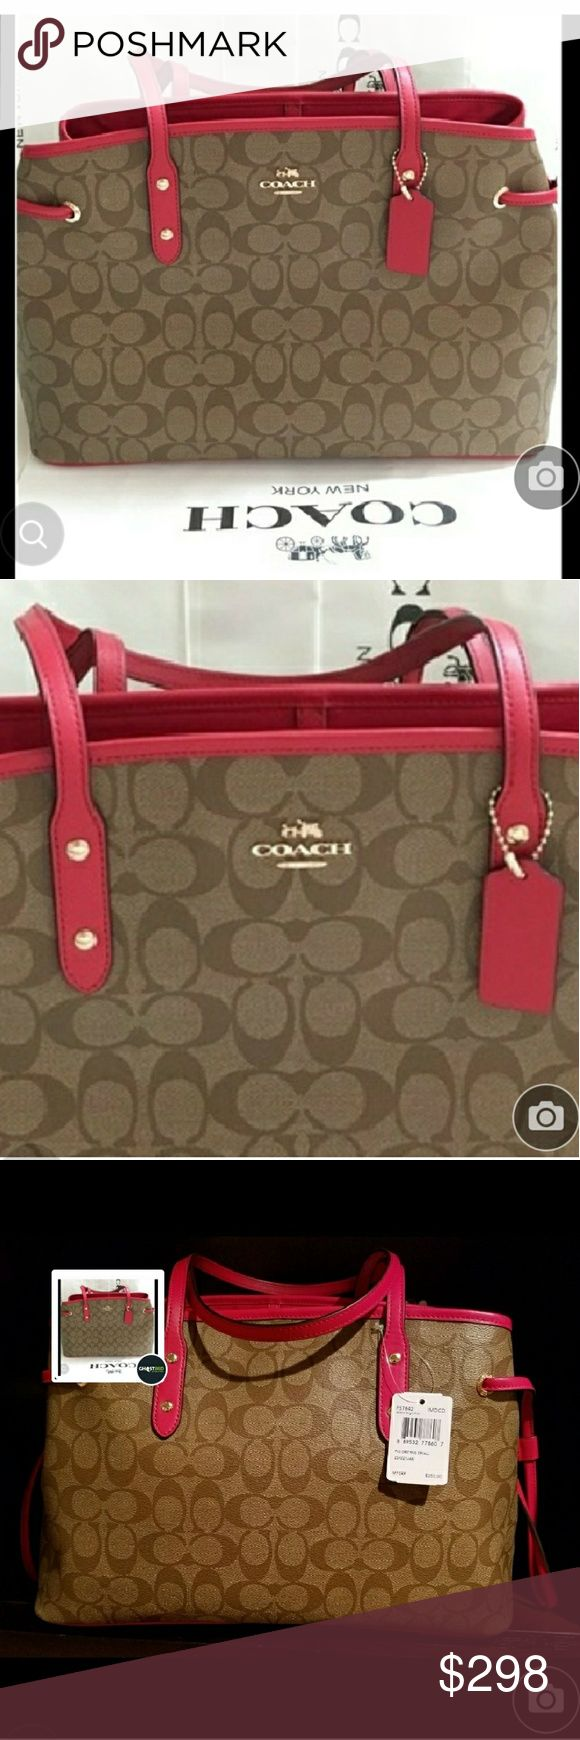 100% Authentic Beautiful brand new Coach handbag Gorgeous condition ..absolutely brand new still with tags never used! Lots of room! Also comes with dust bag. Also Victoria's Secret freebies with any purchase Coach Bags Shoulder Bags